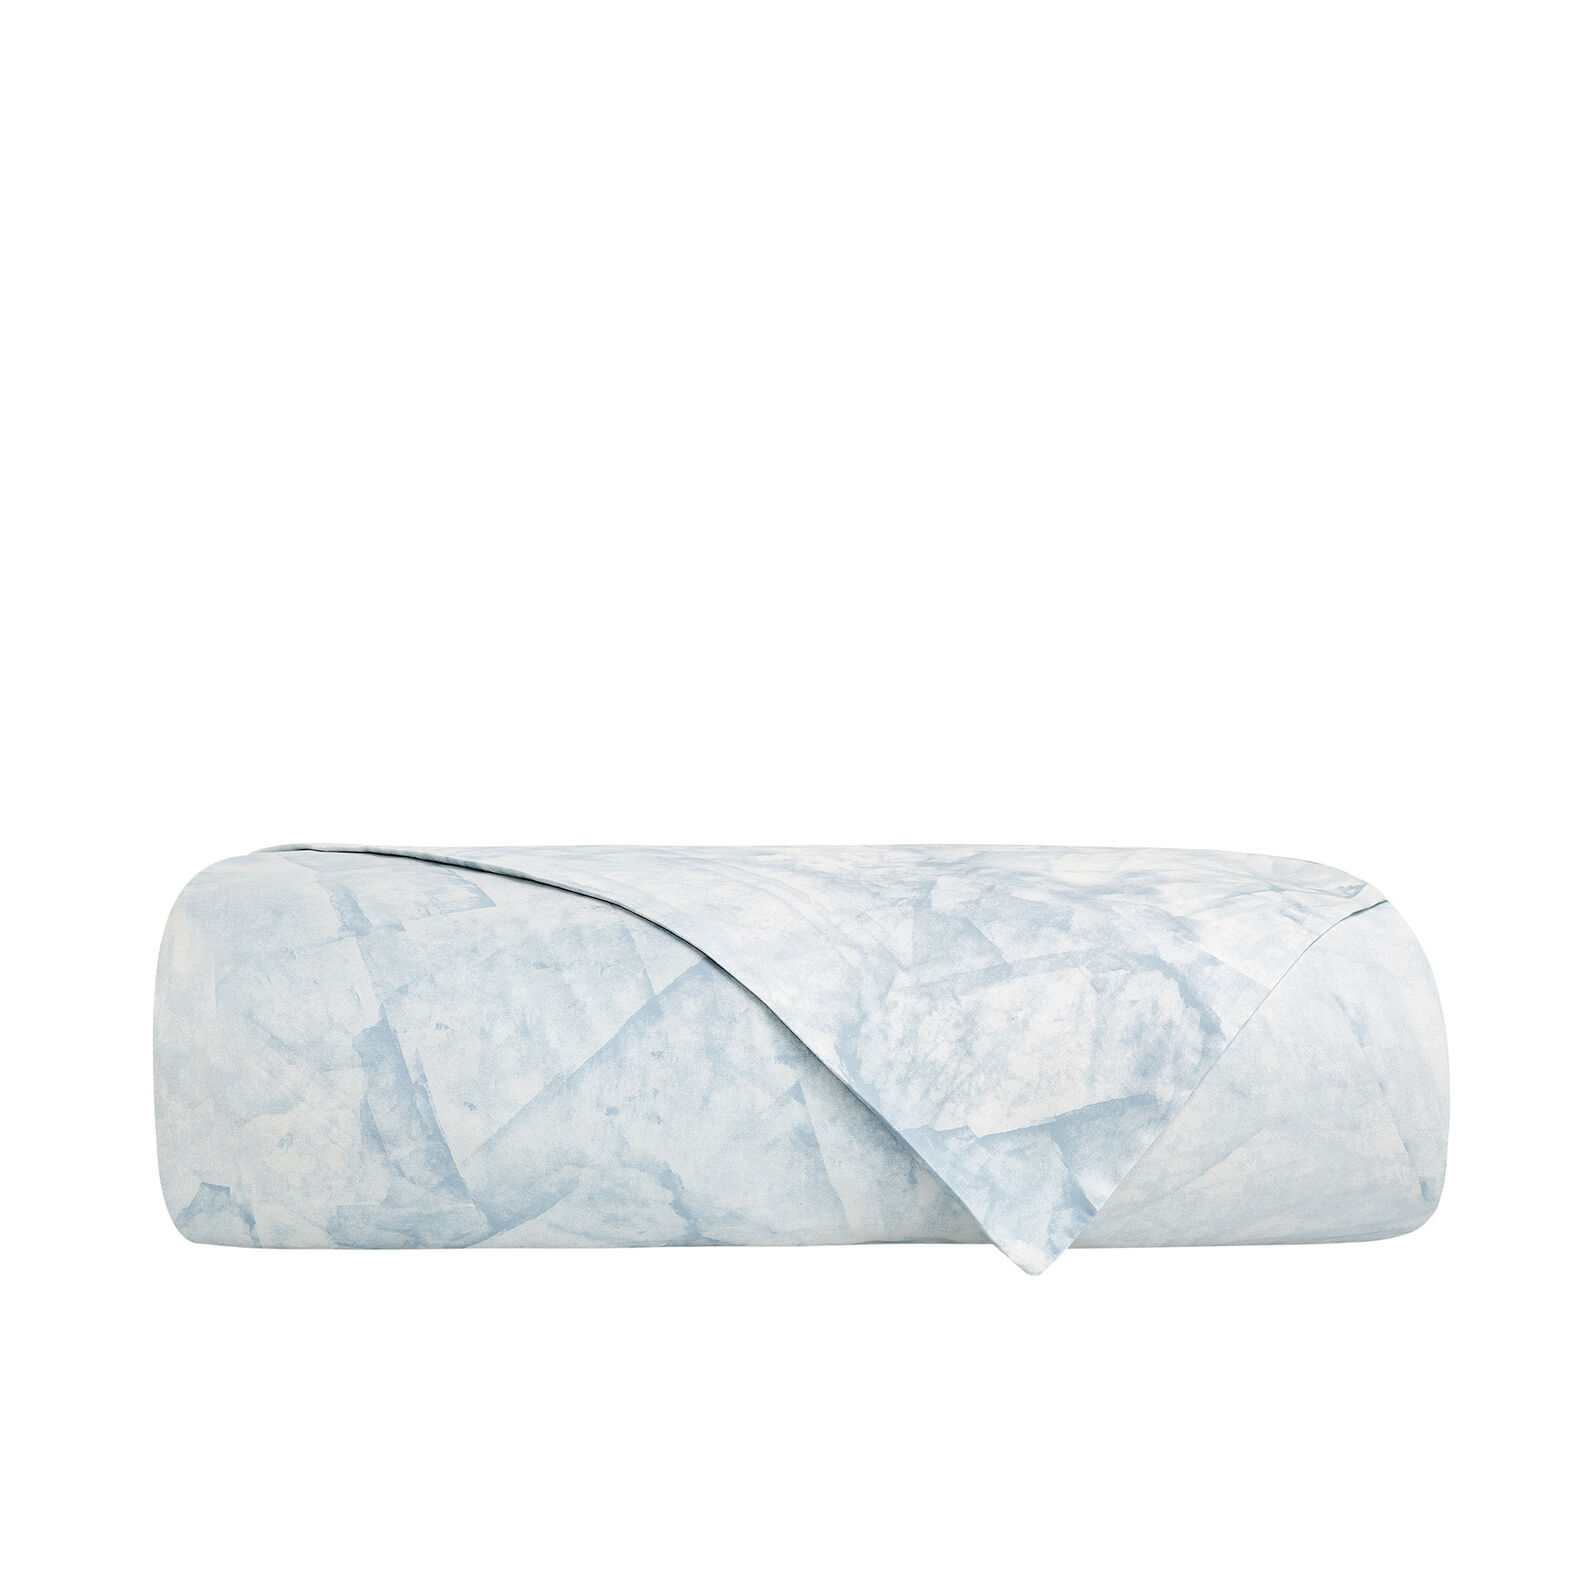 Marble patterned flat sheet in cotton satin